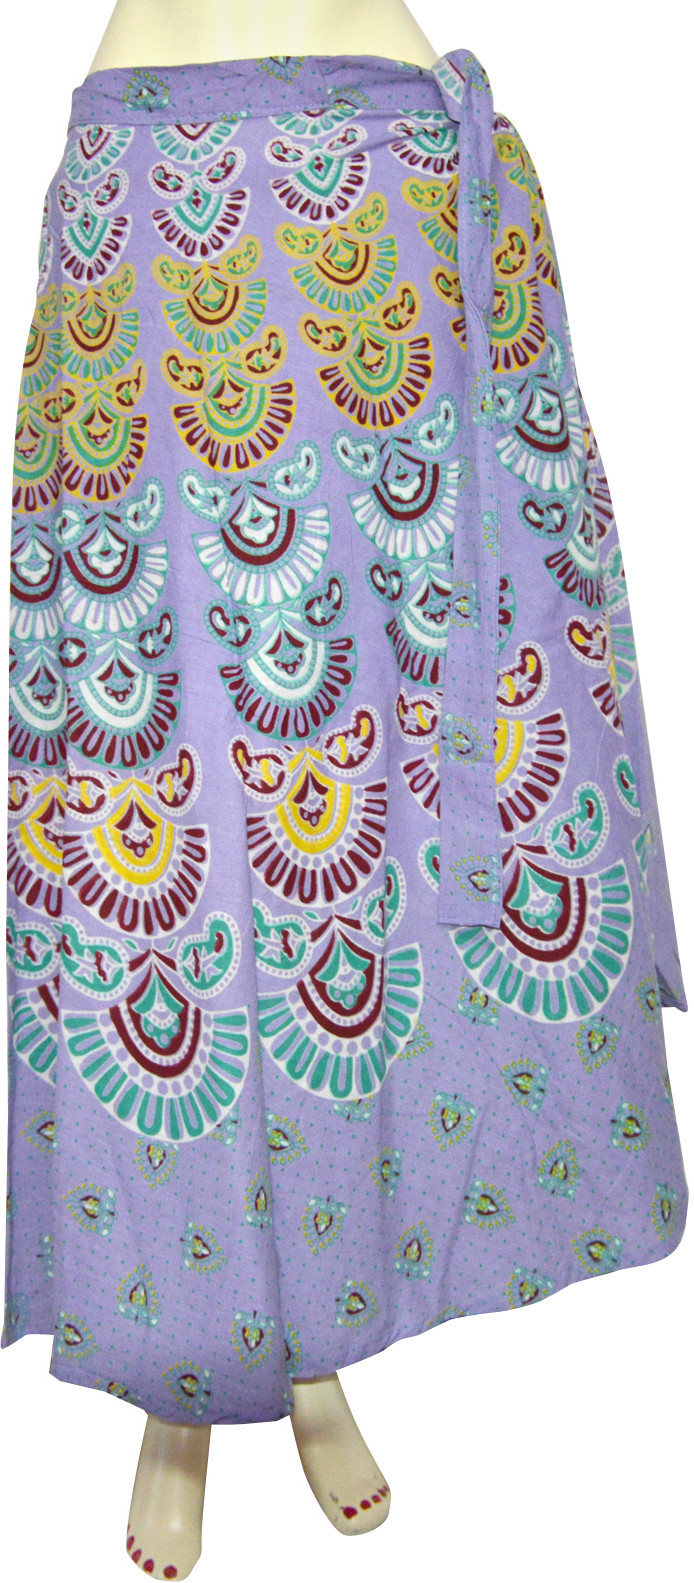 Marusthali Printed Womens Wrap Around Multicolor Skirt